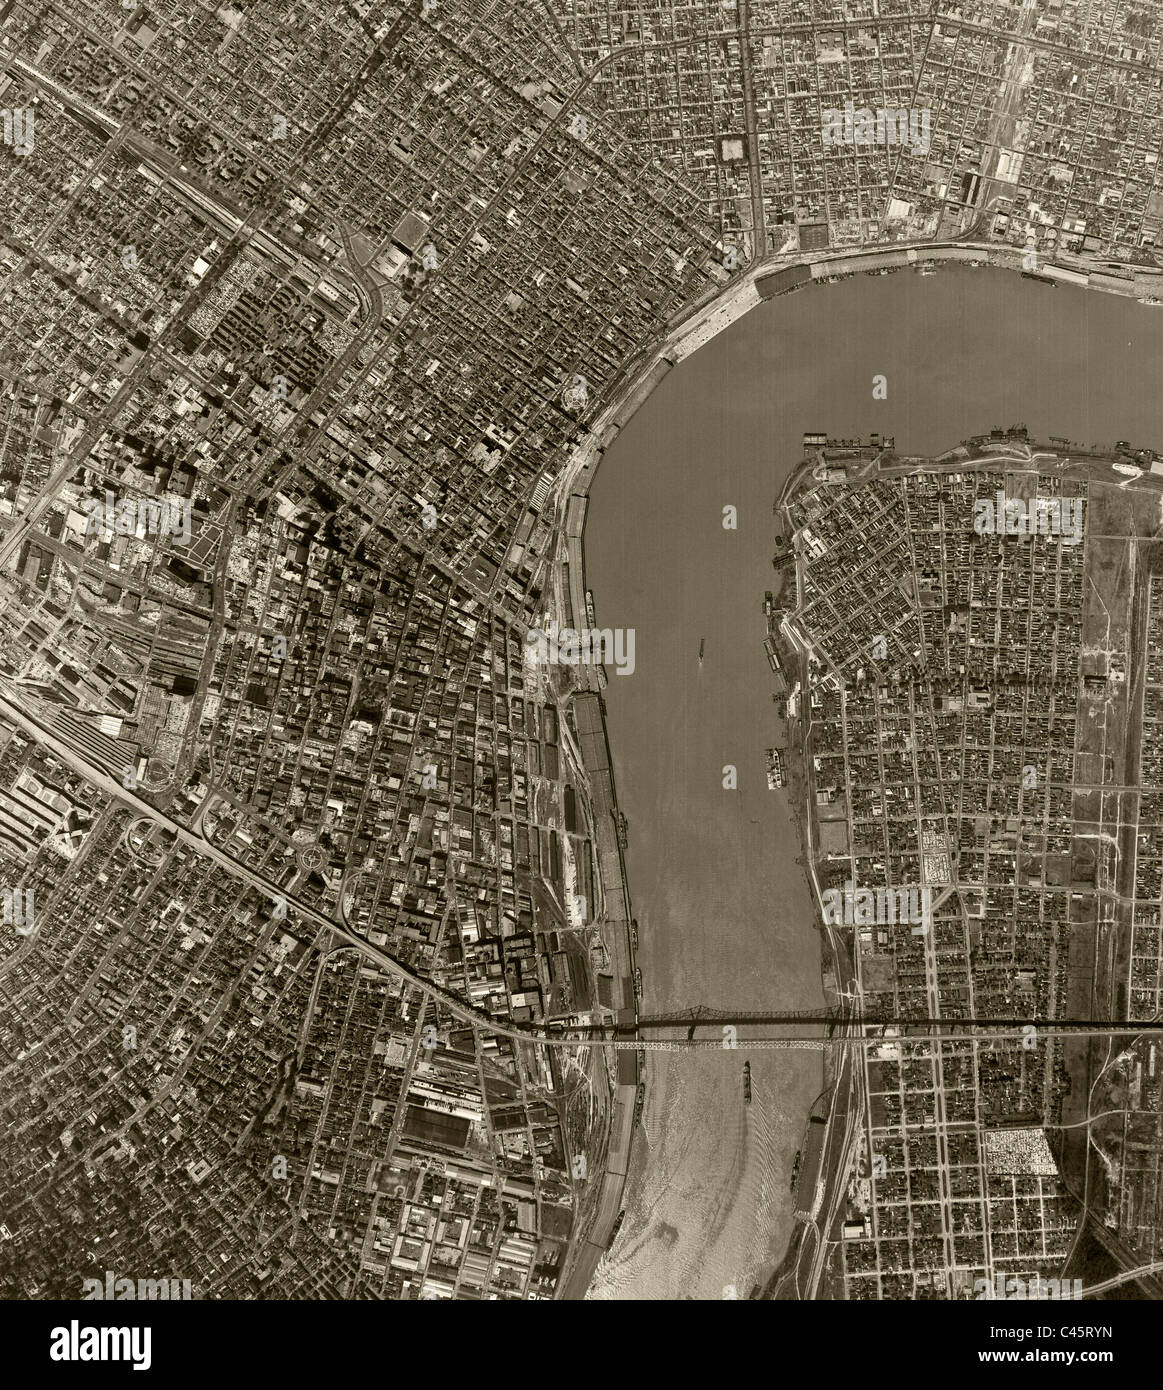 aerial map view above New Orleans Louisiana